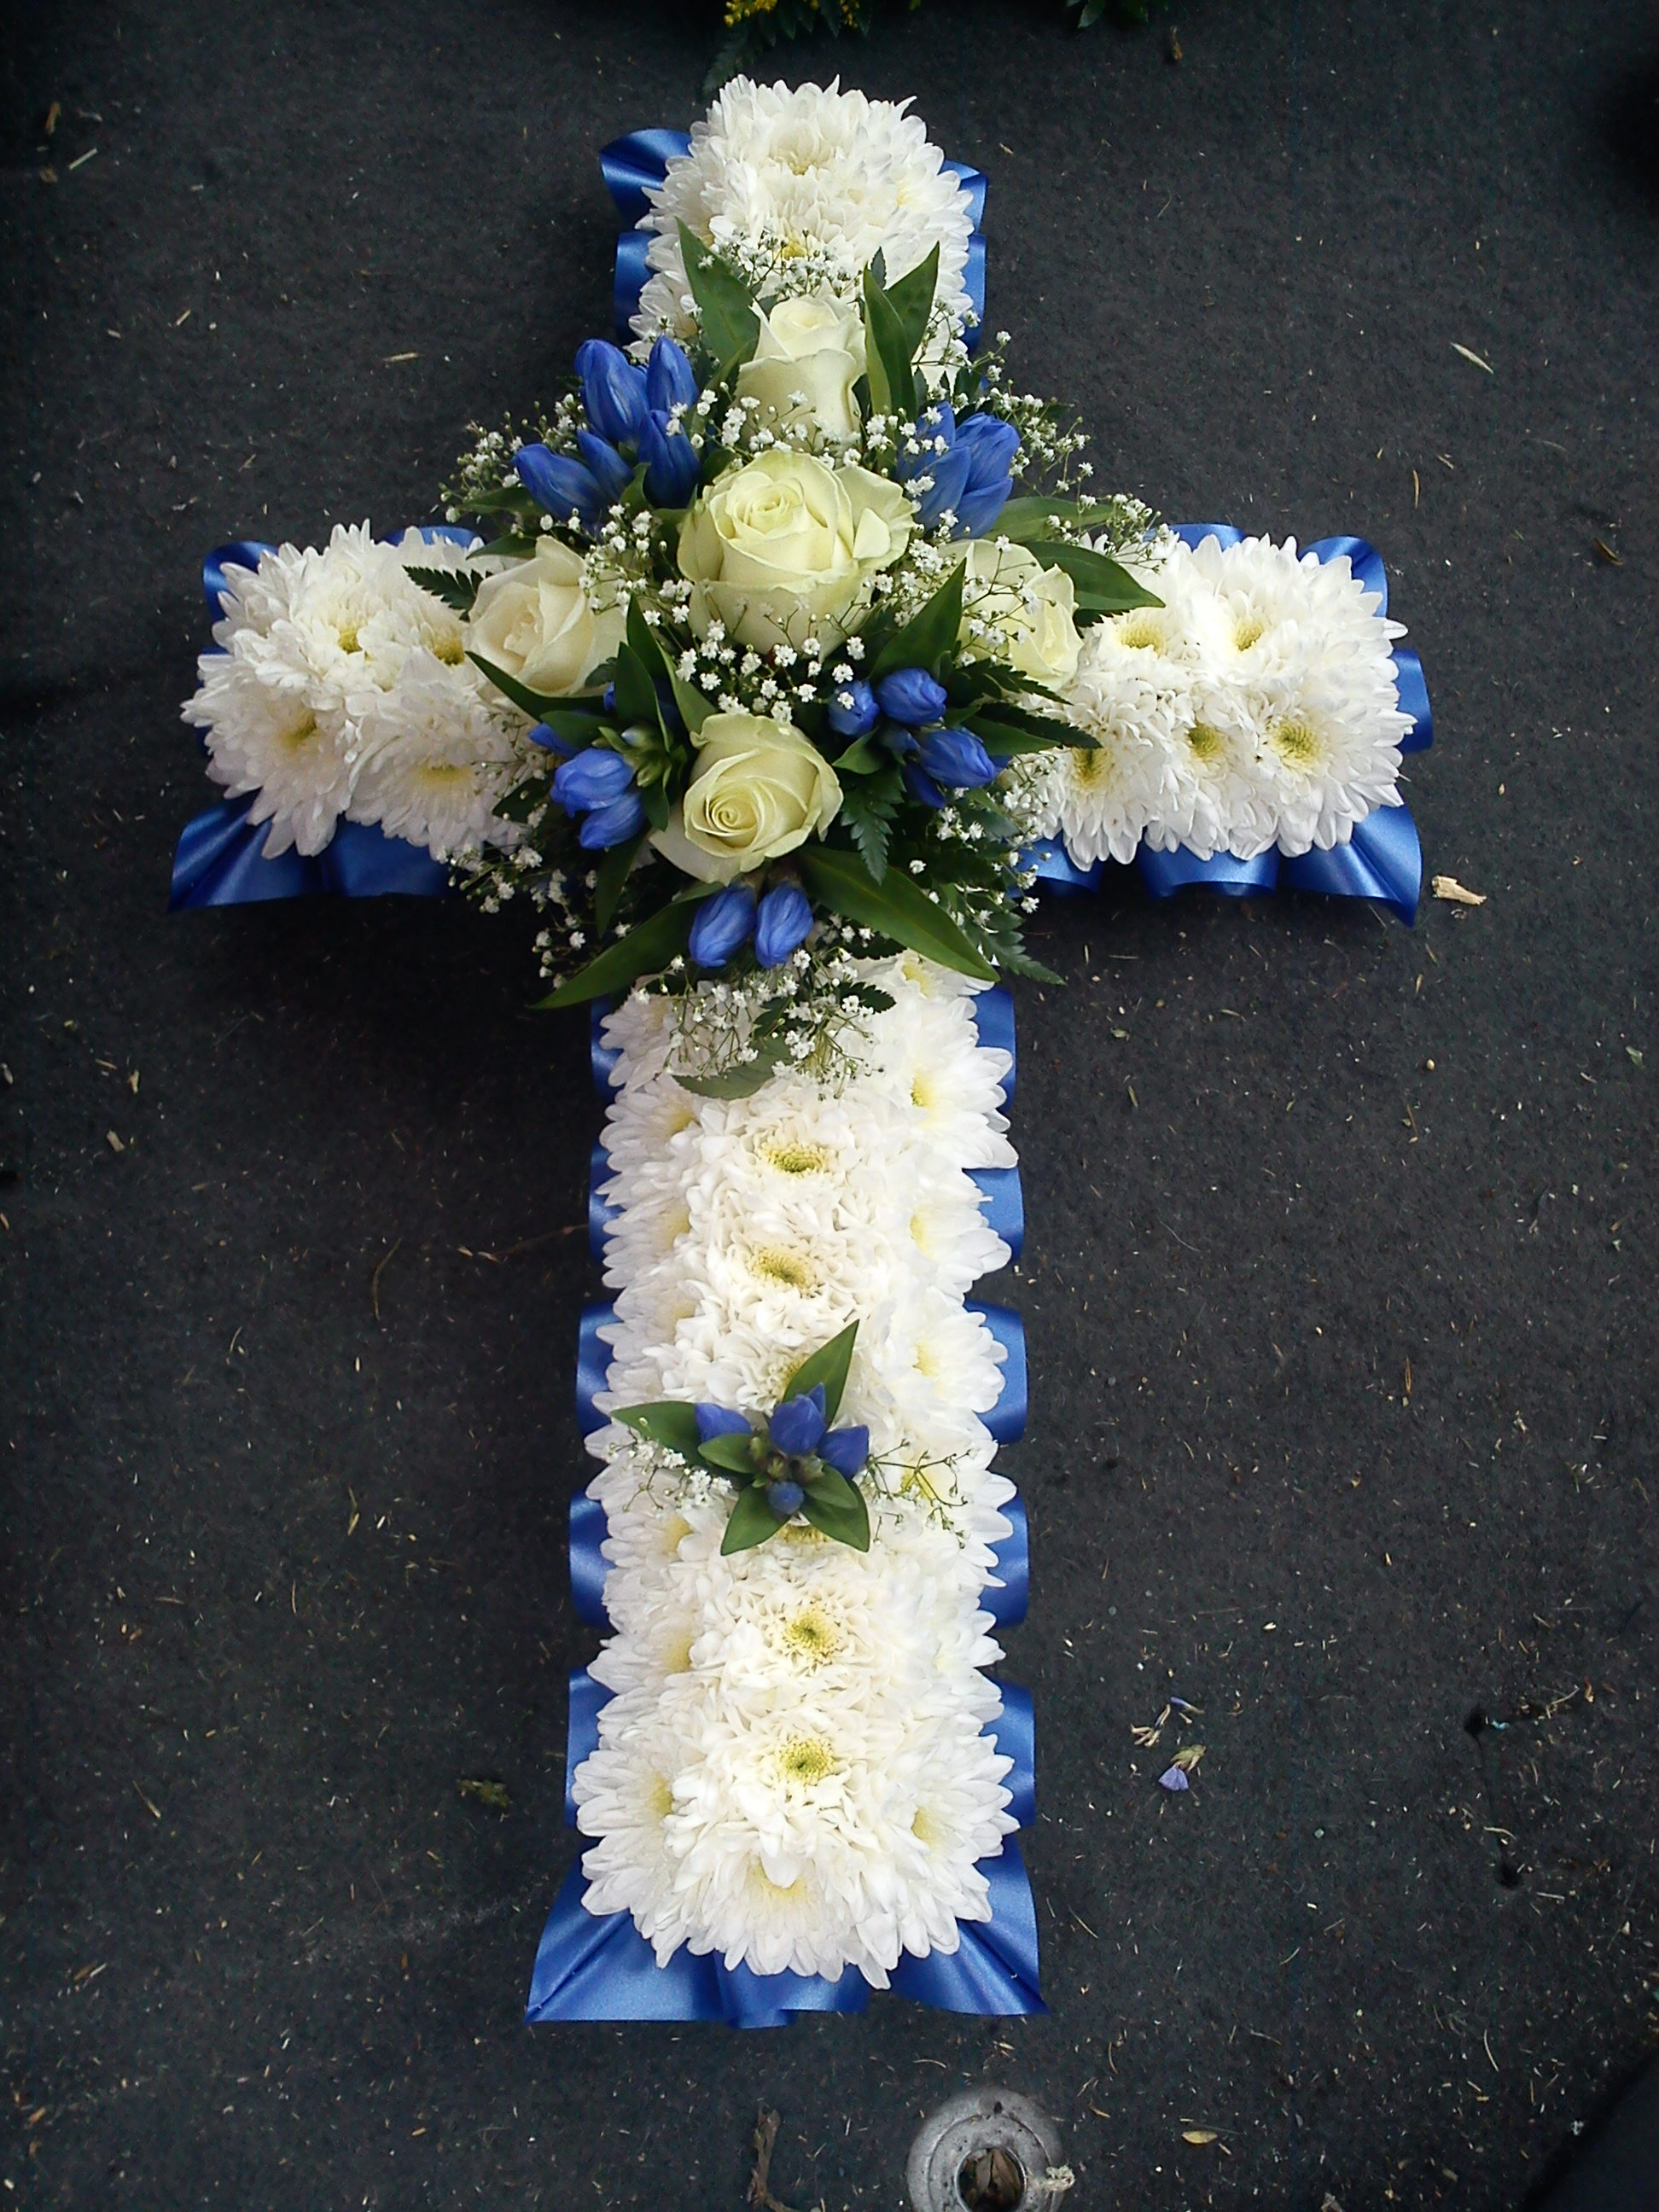 Cross floral tributes pet alls florist cross floral tributes izmirmasajfo